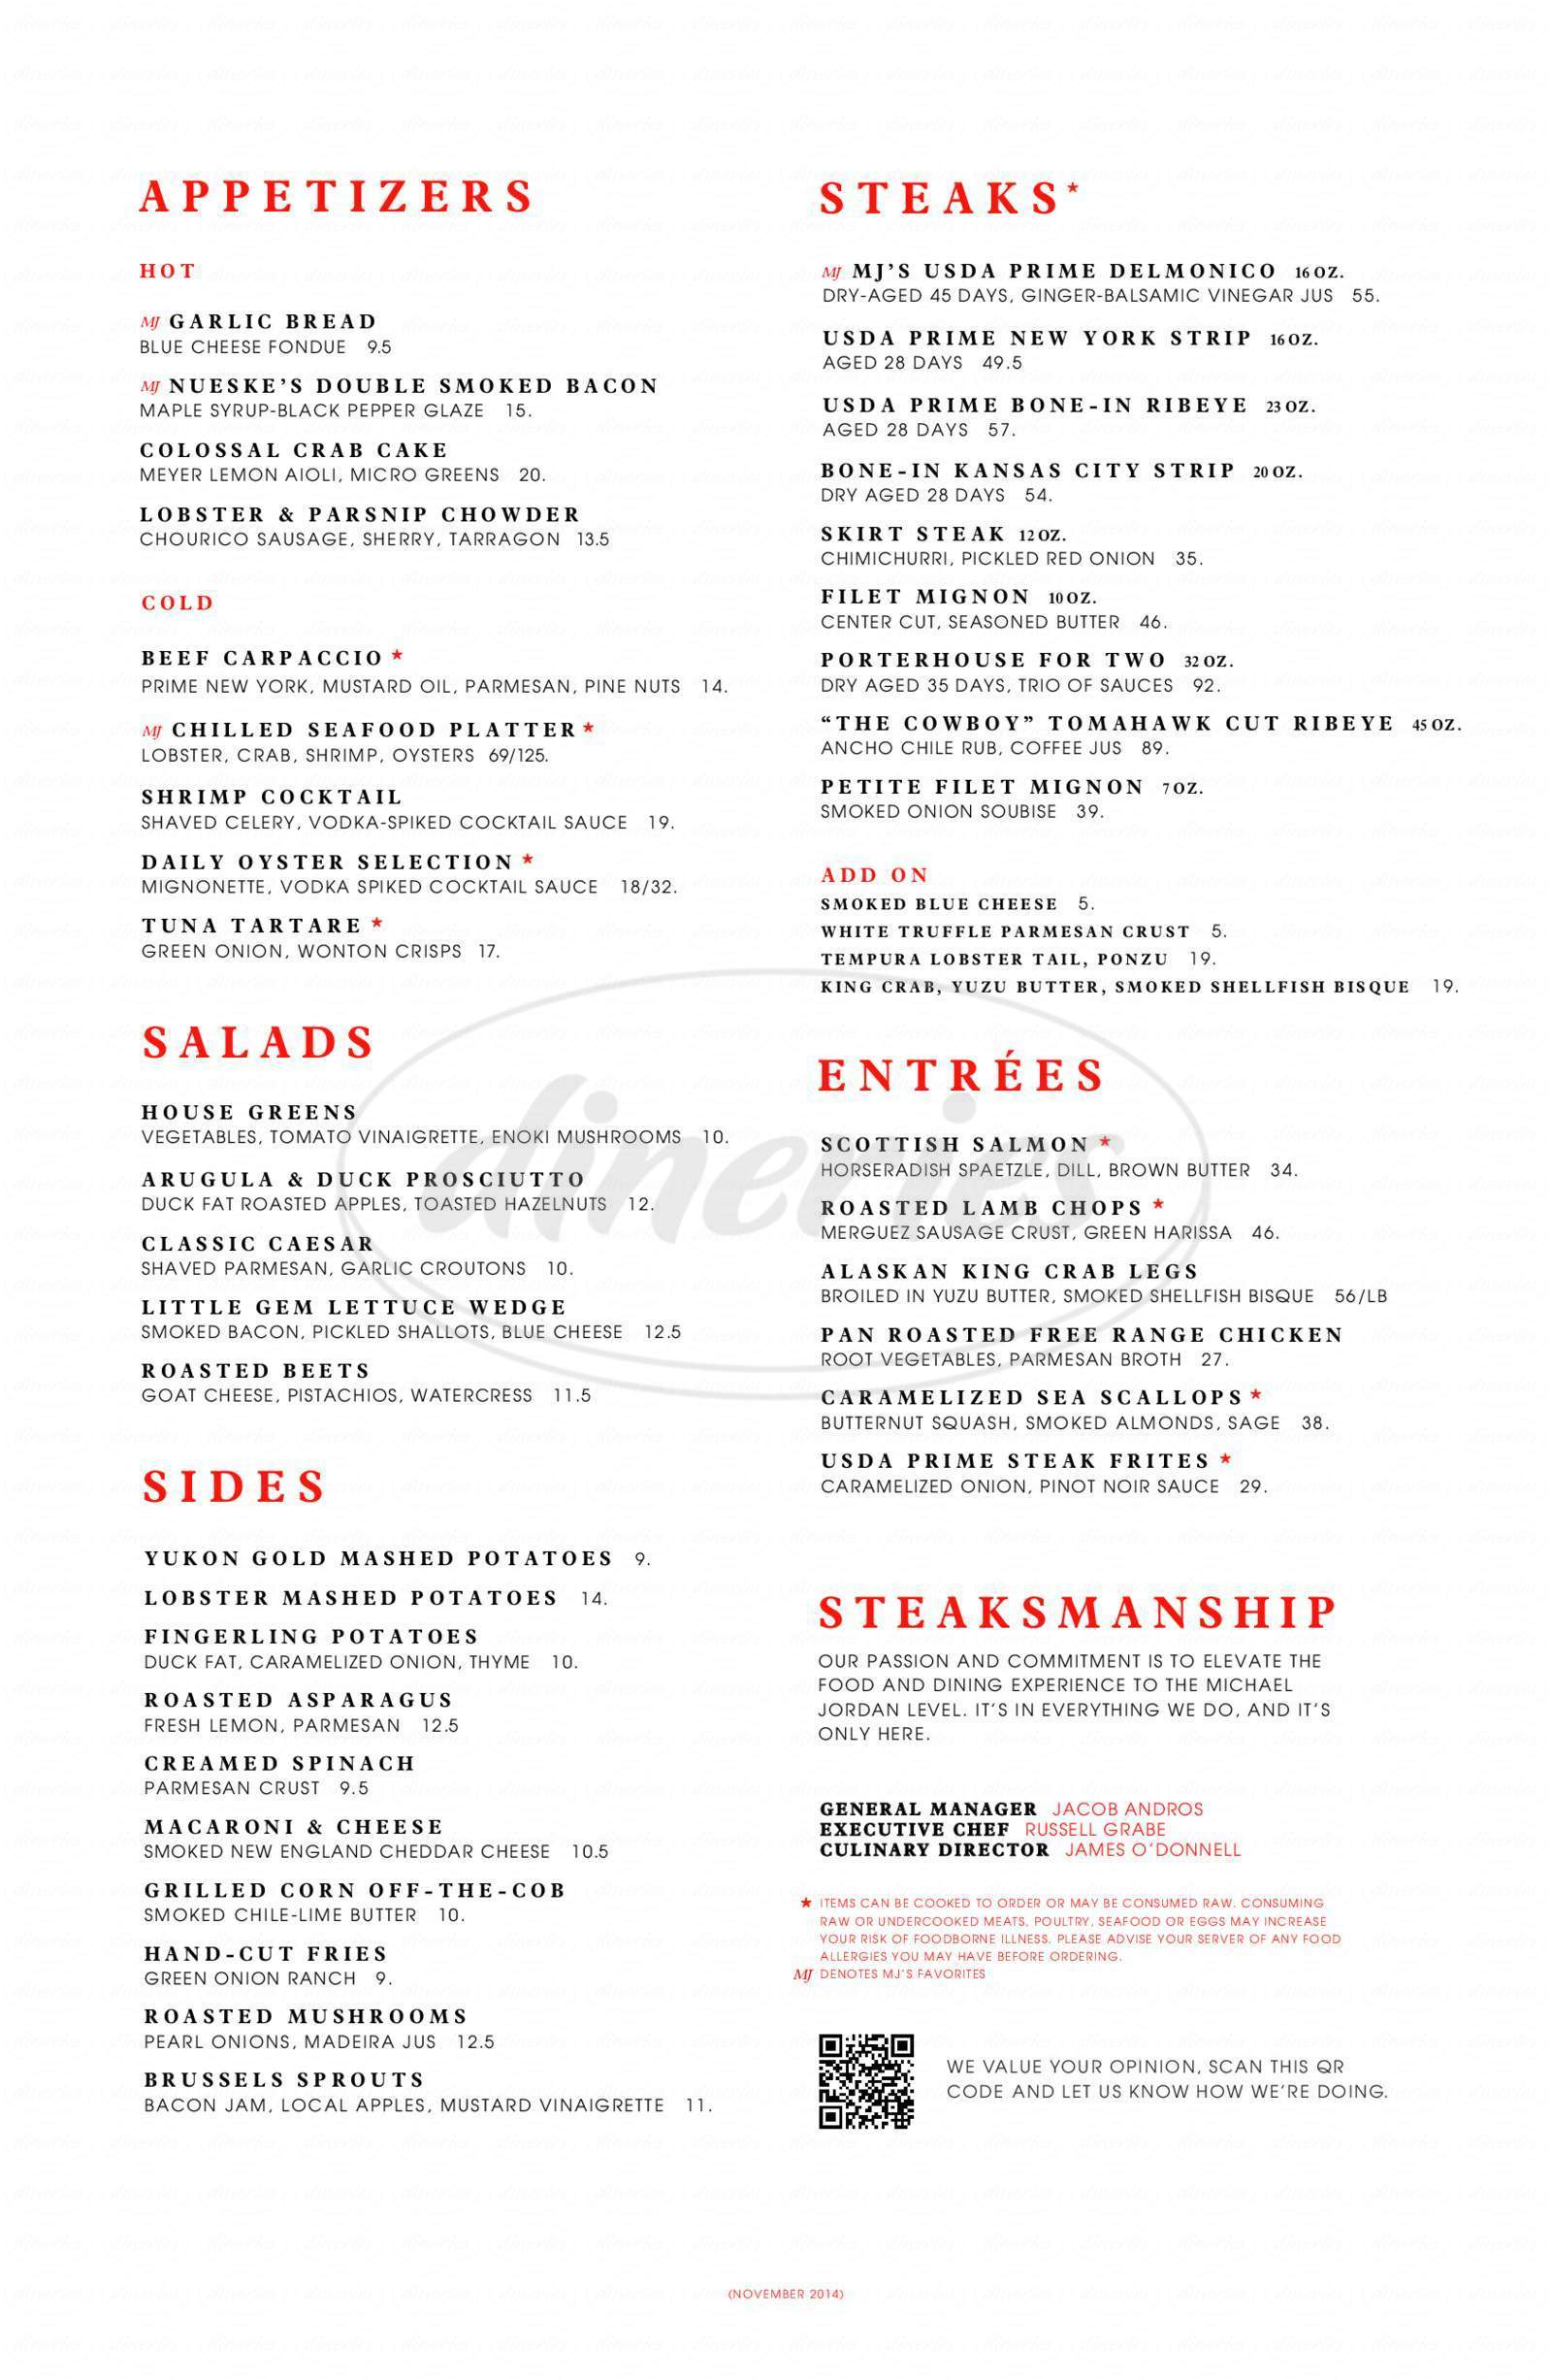 menu for Michael Jordan's Steakhouse